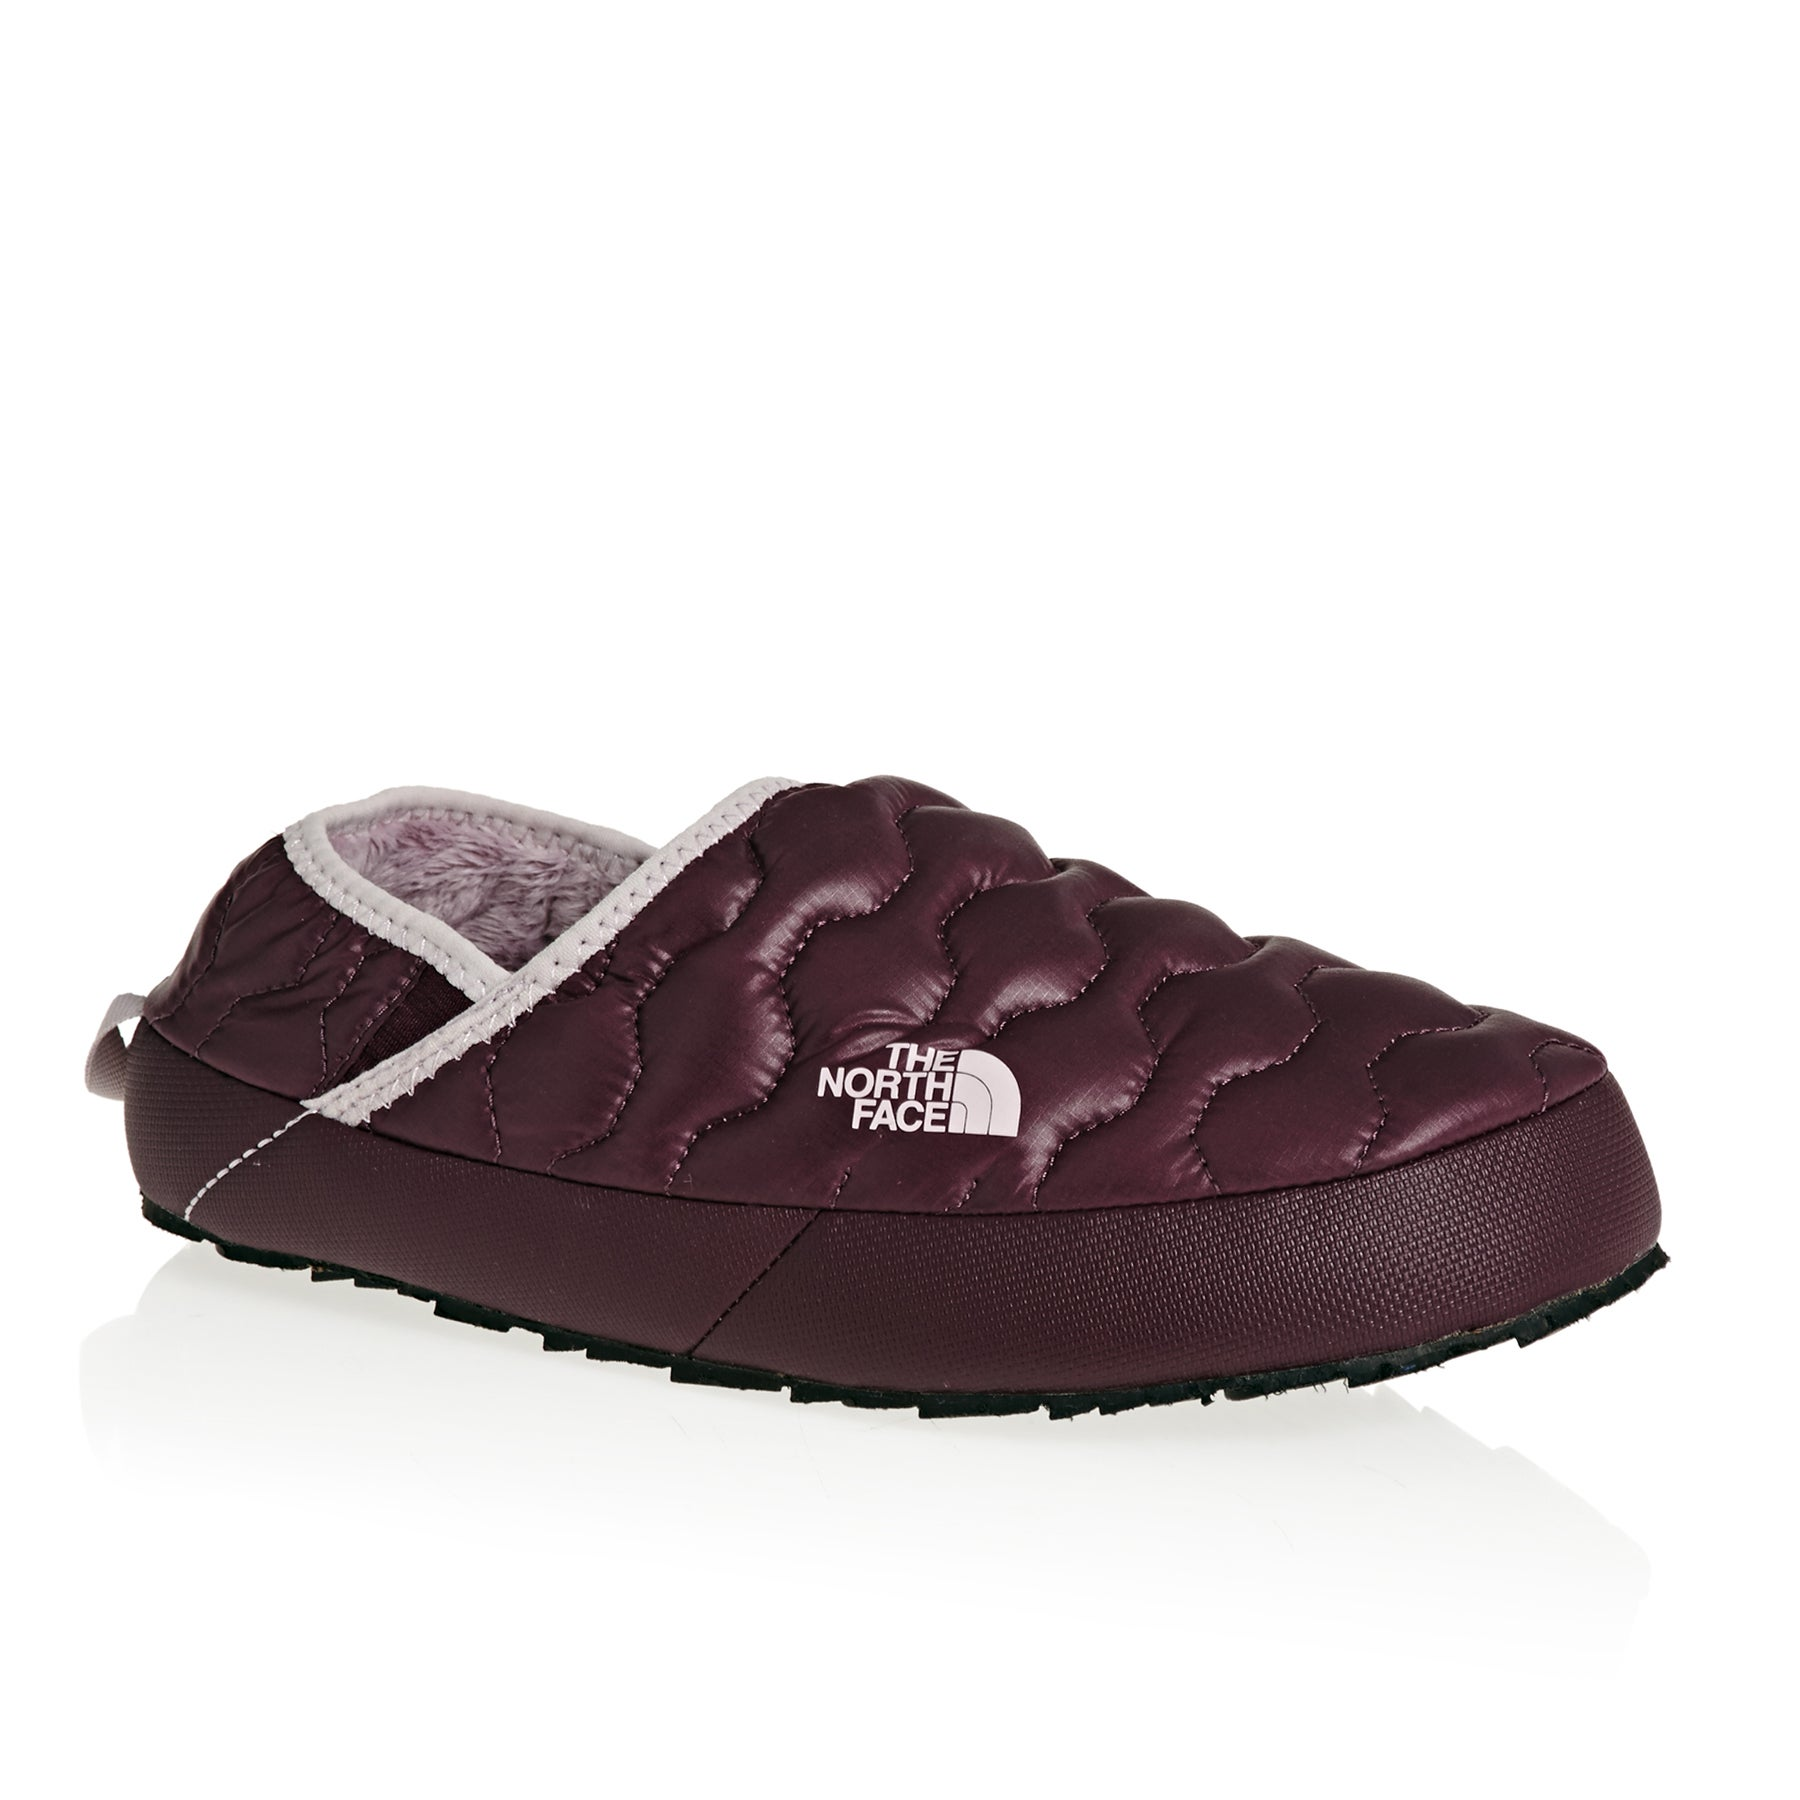 Original Mens North Face Slippers Size Uk 13 At All Costs Clothing, Shoes & Accessories Slippers